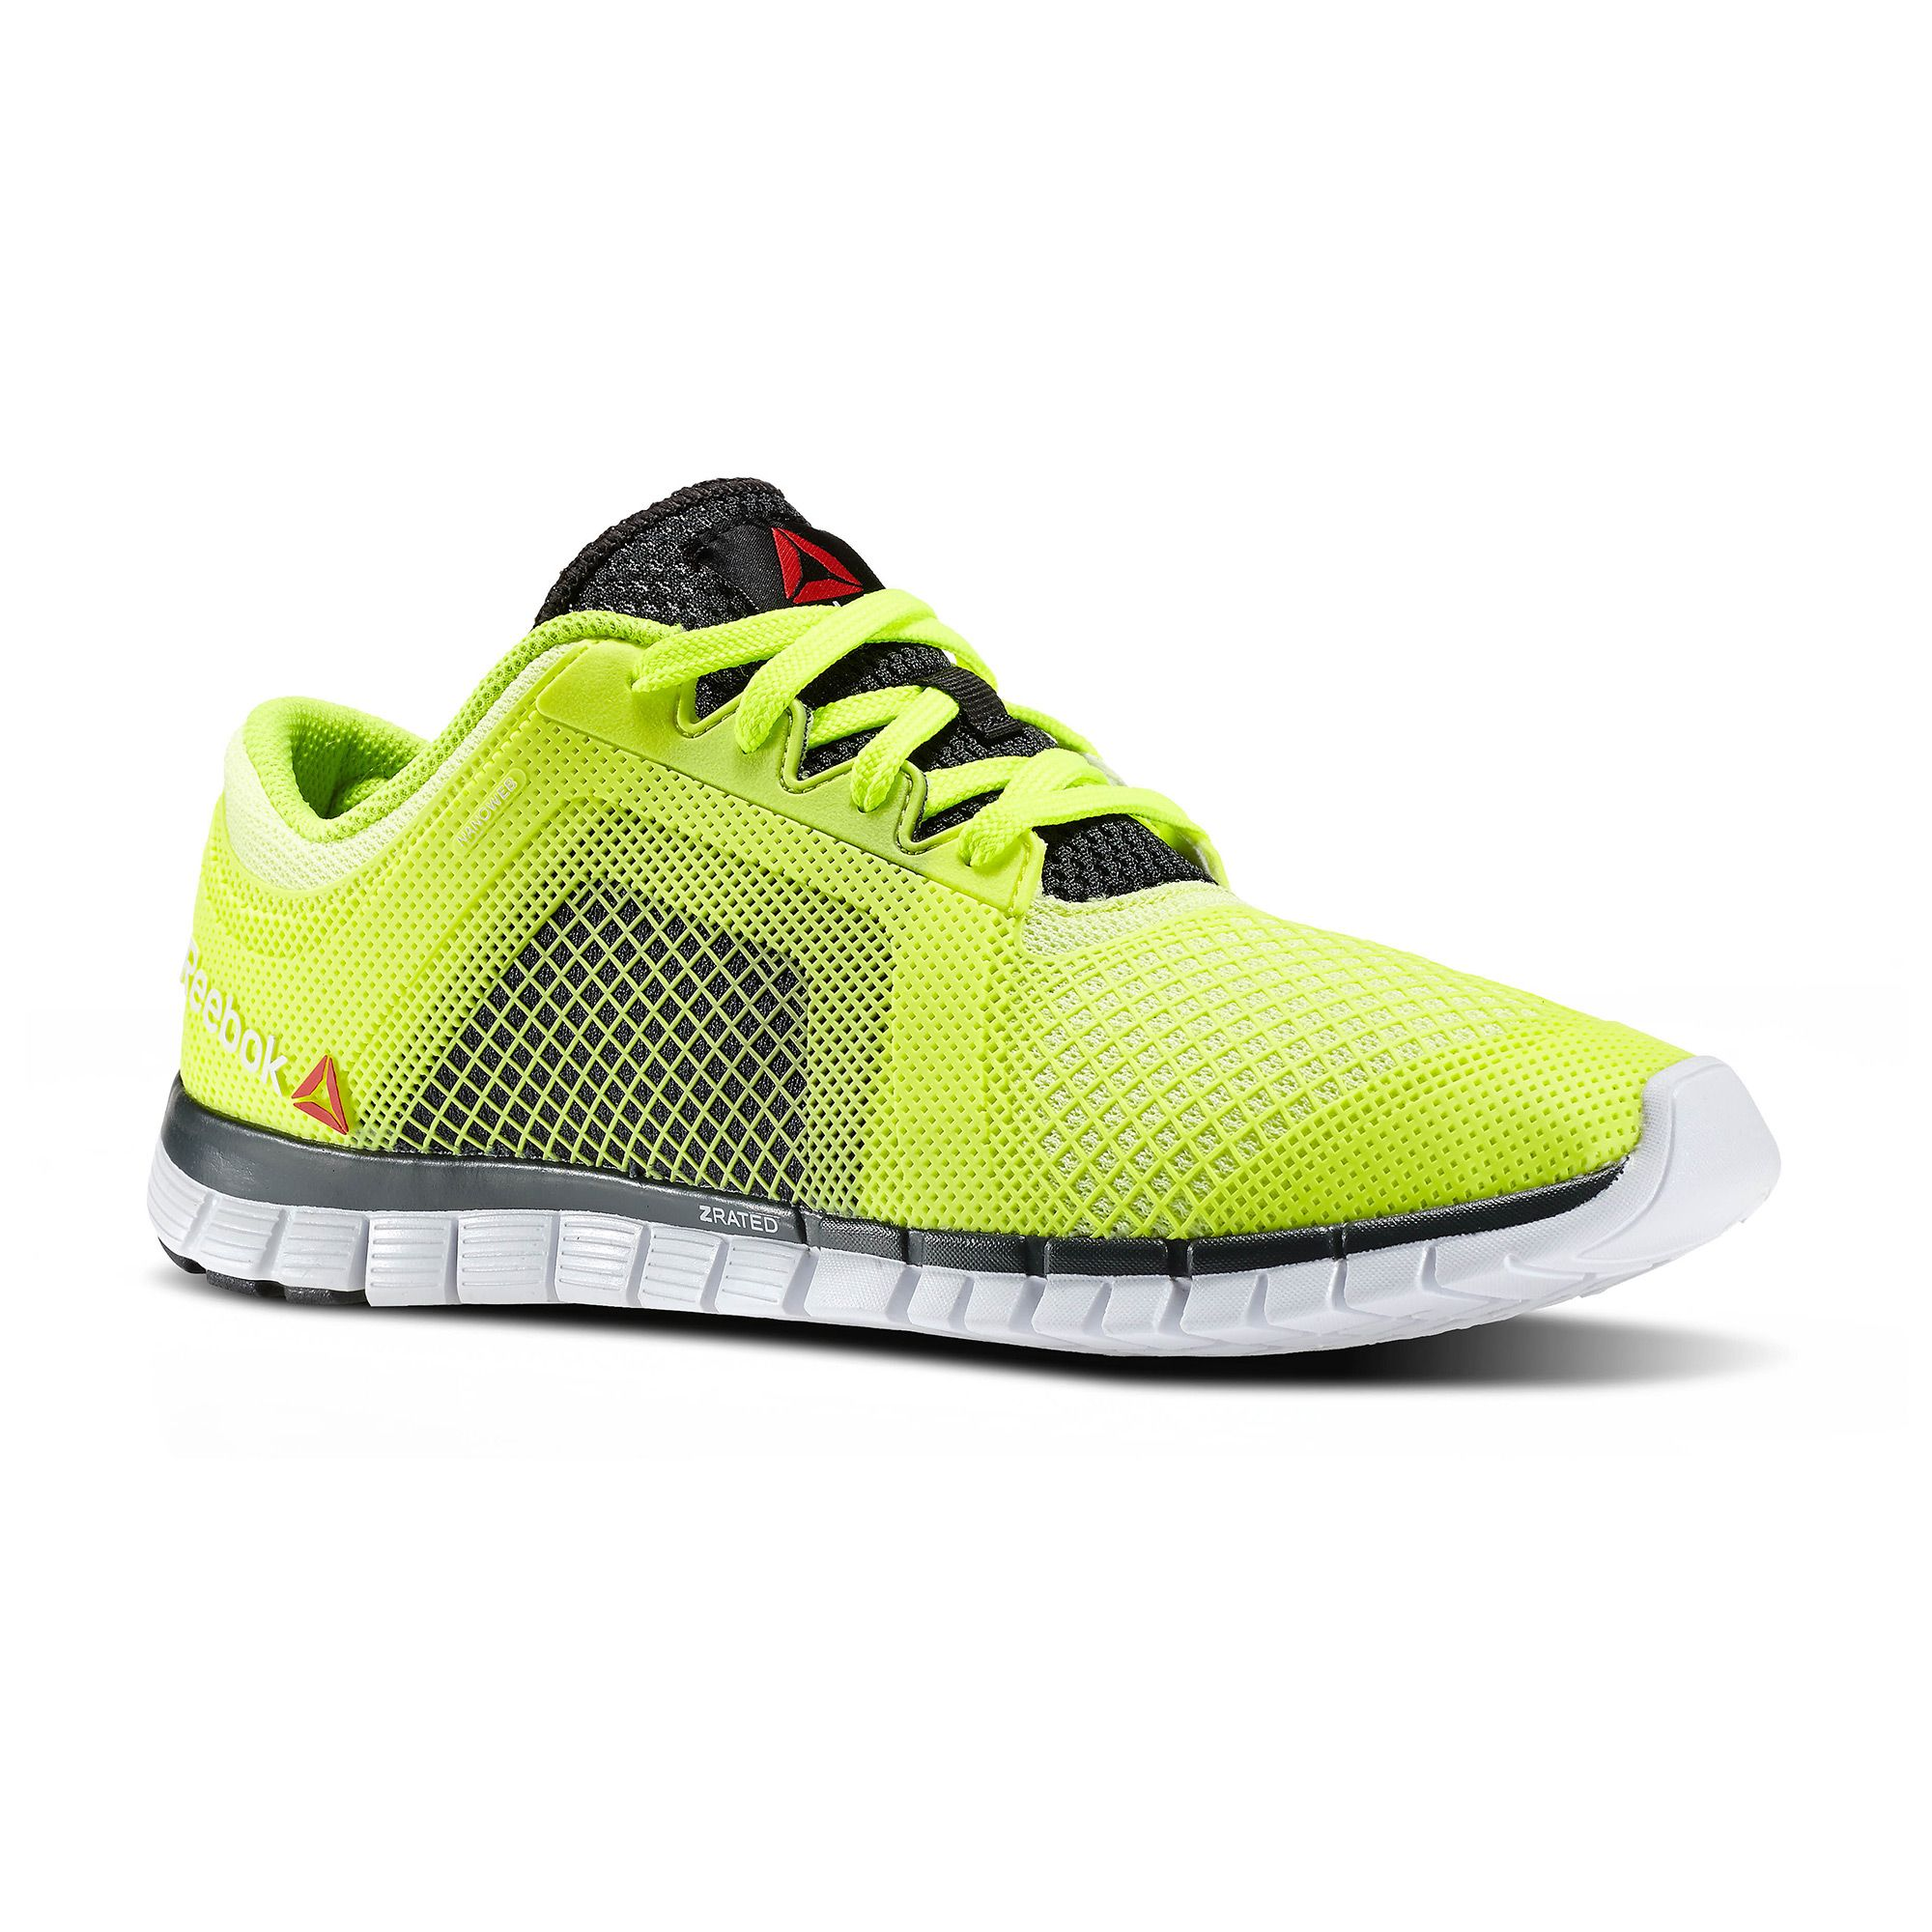 Reebok-Sports-shoes-and-running-shoes-for-men (26)